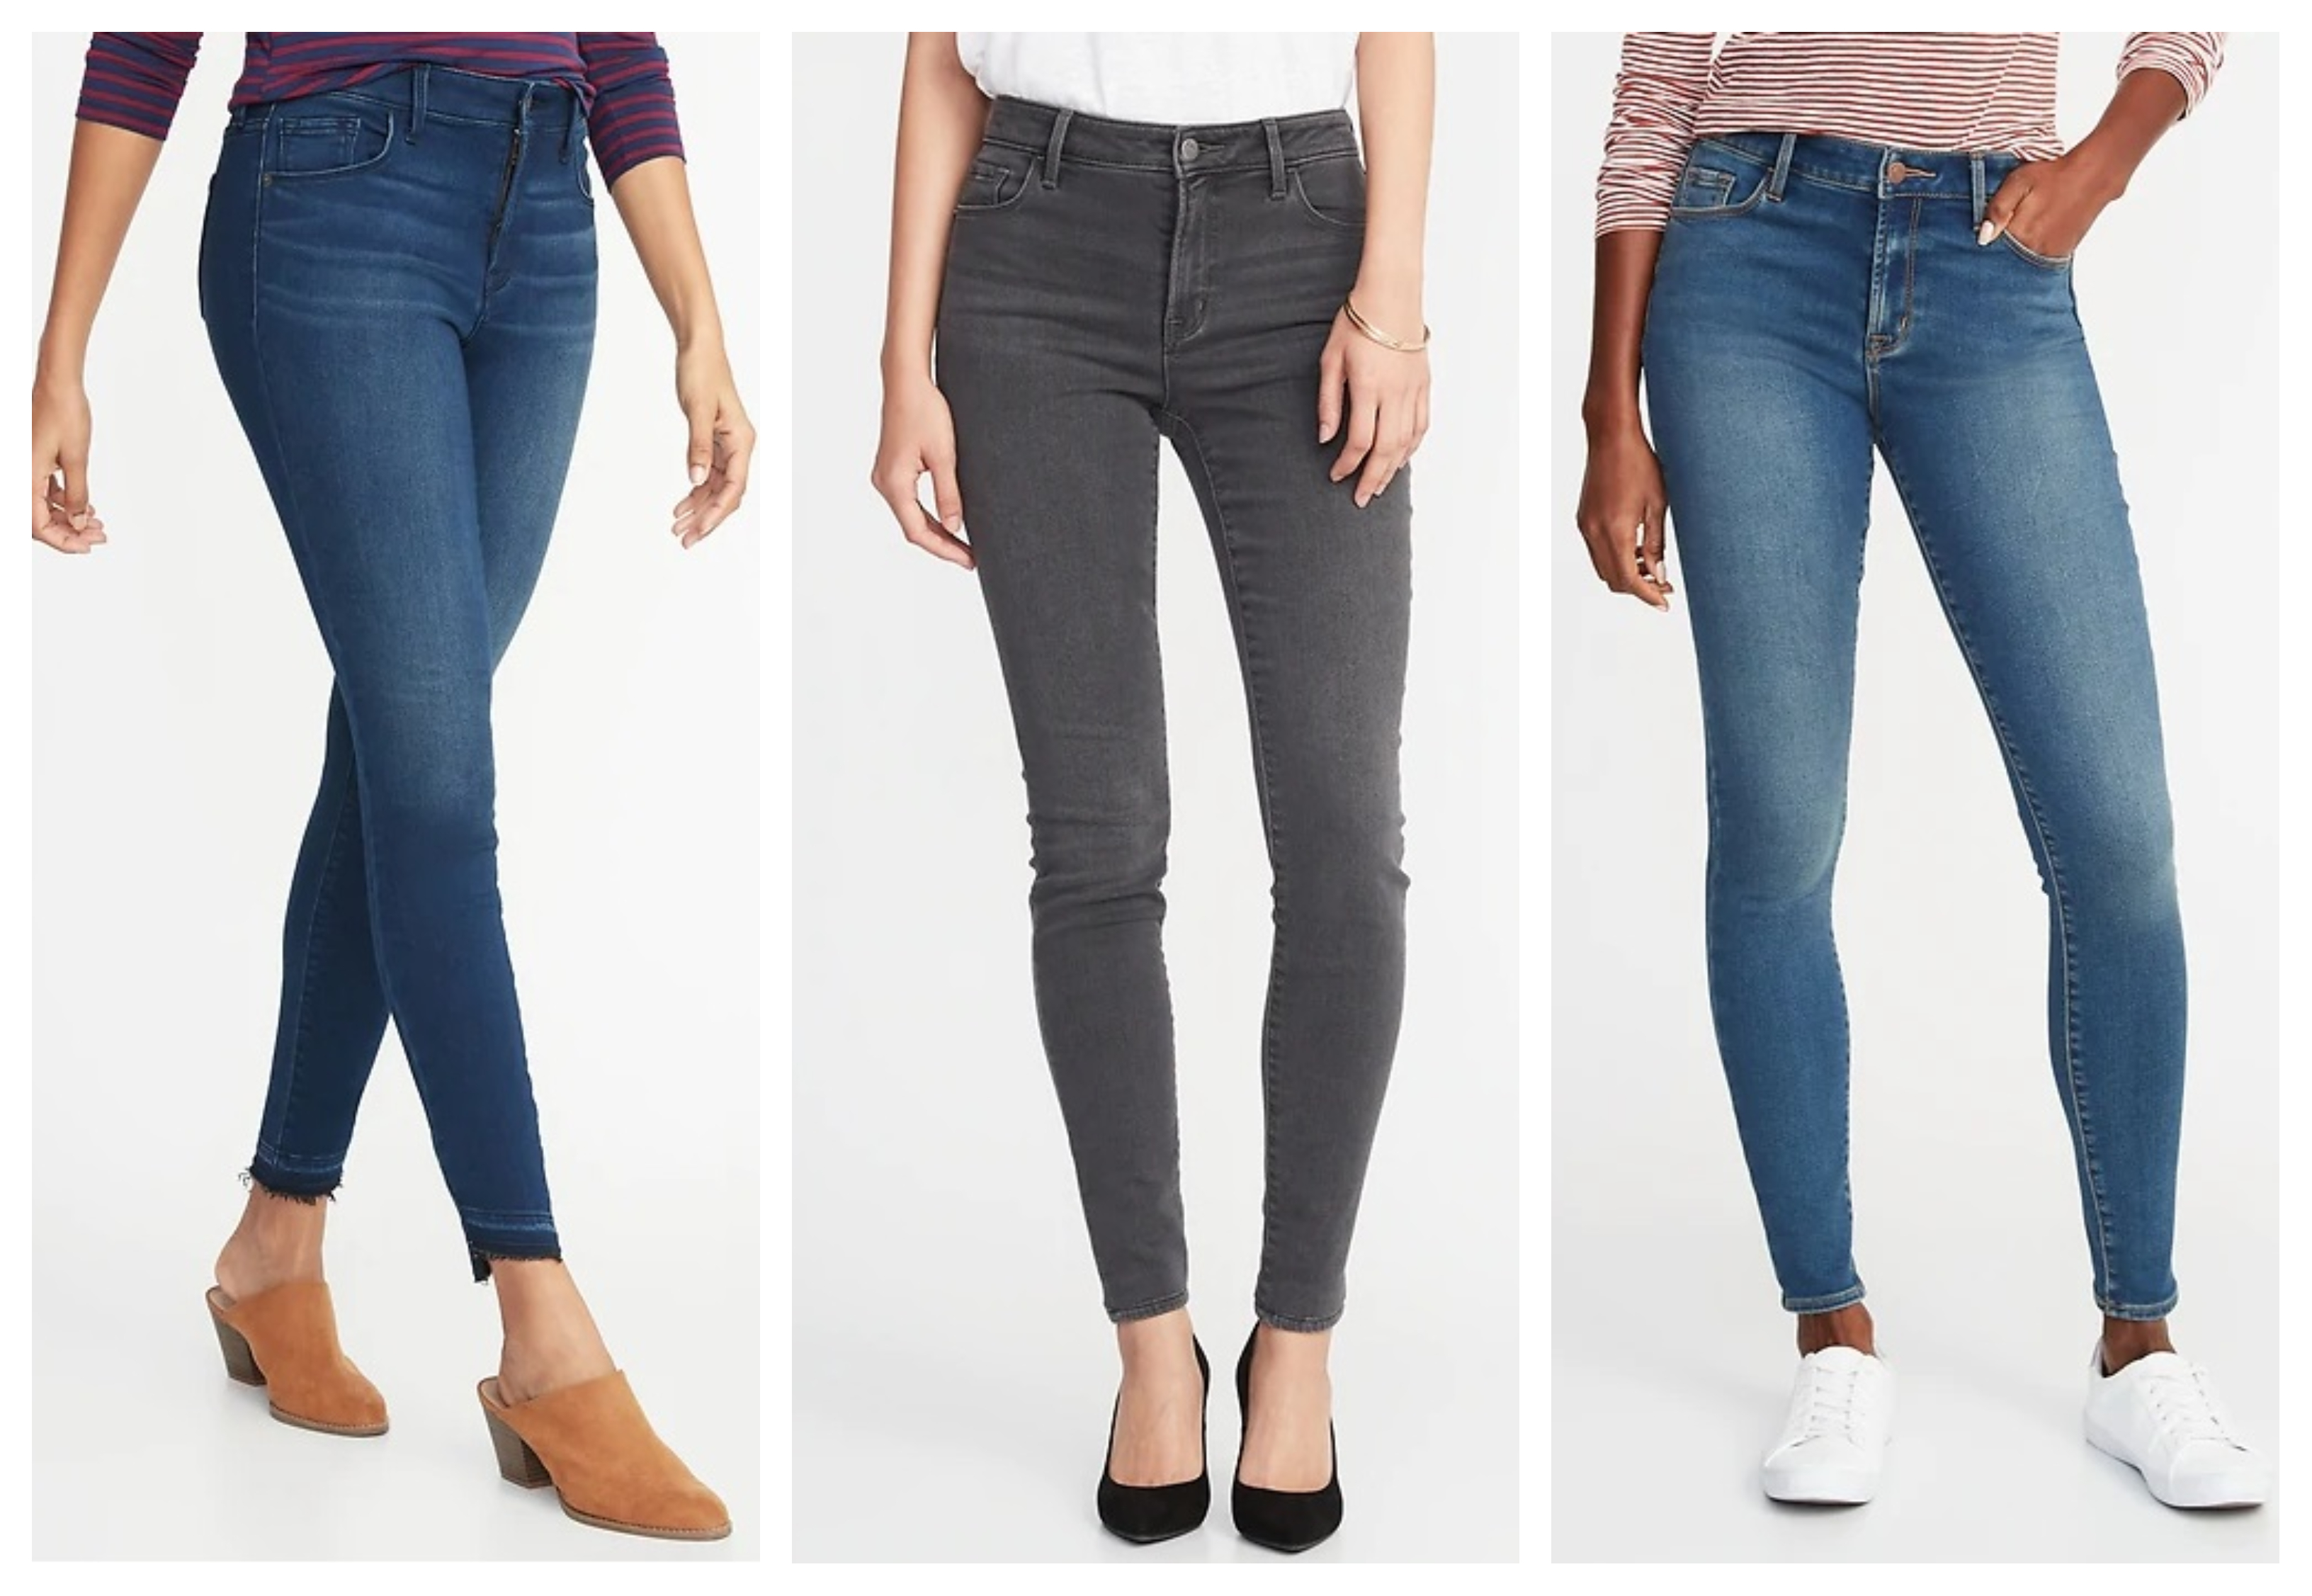 Old Navy Warm Jeans Only 24 Reg 40 These Sound Amazing